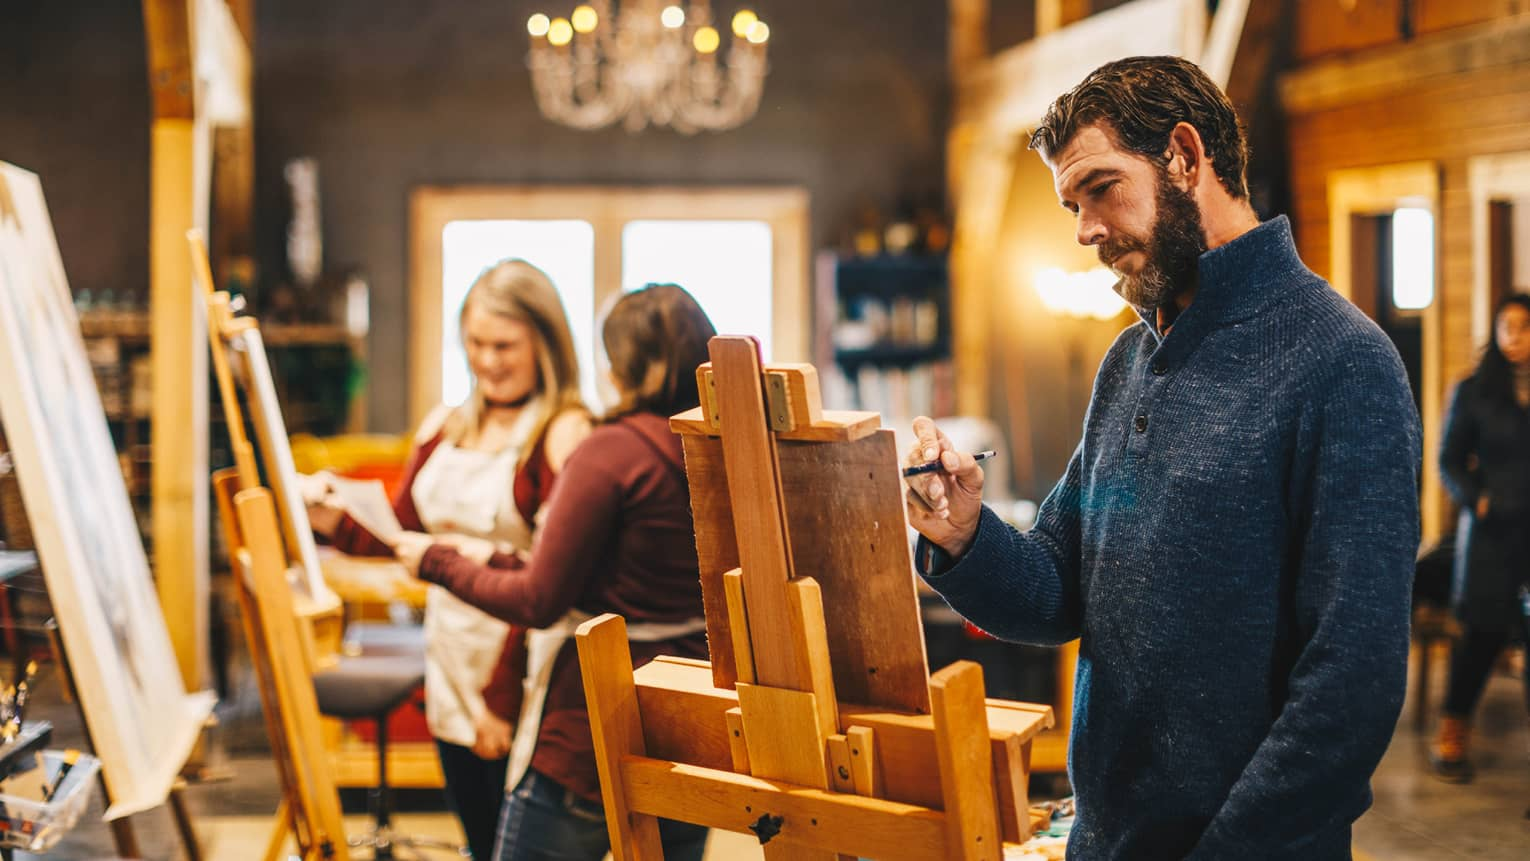 A man uses an easel and paints during a class